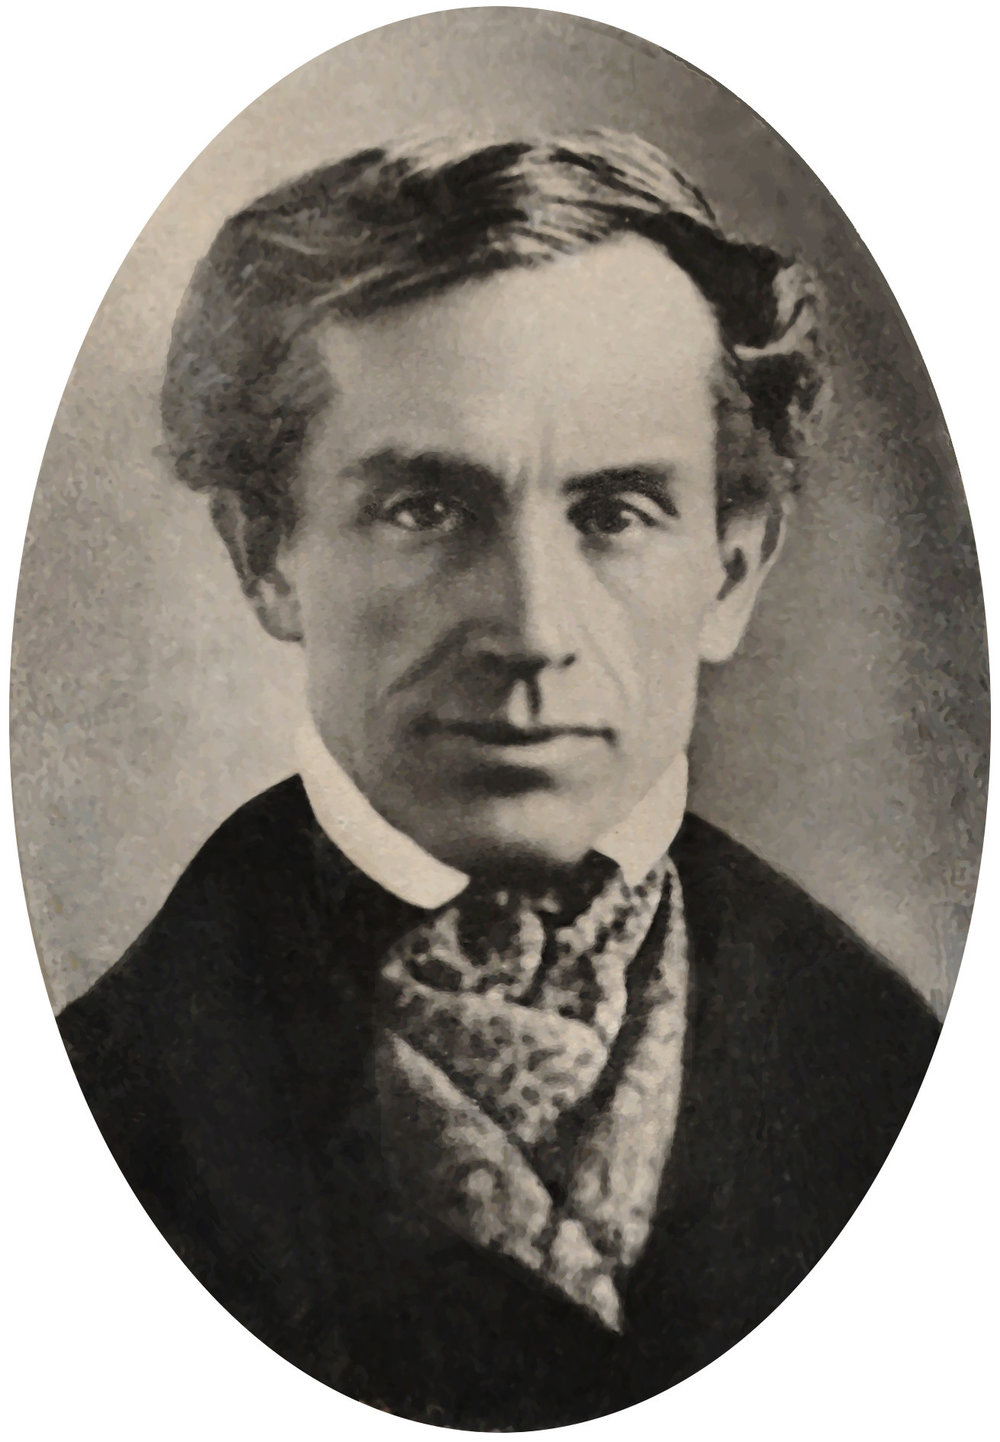 Photograph of Samuel Morse